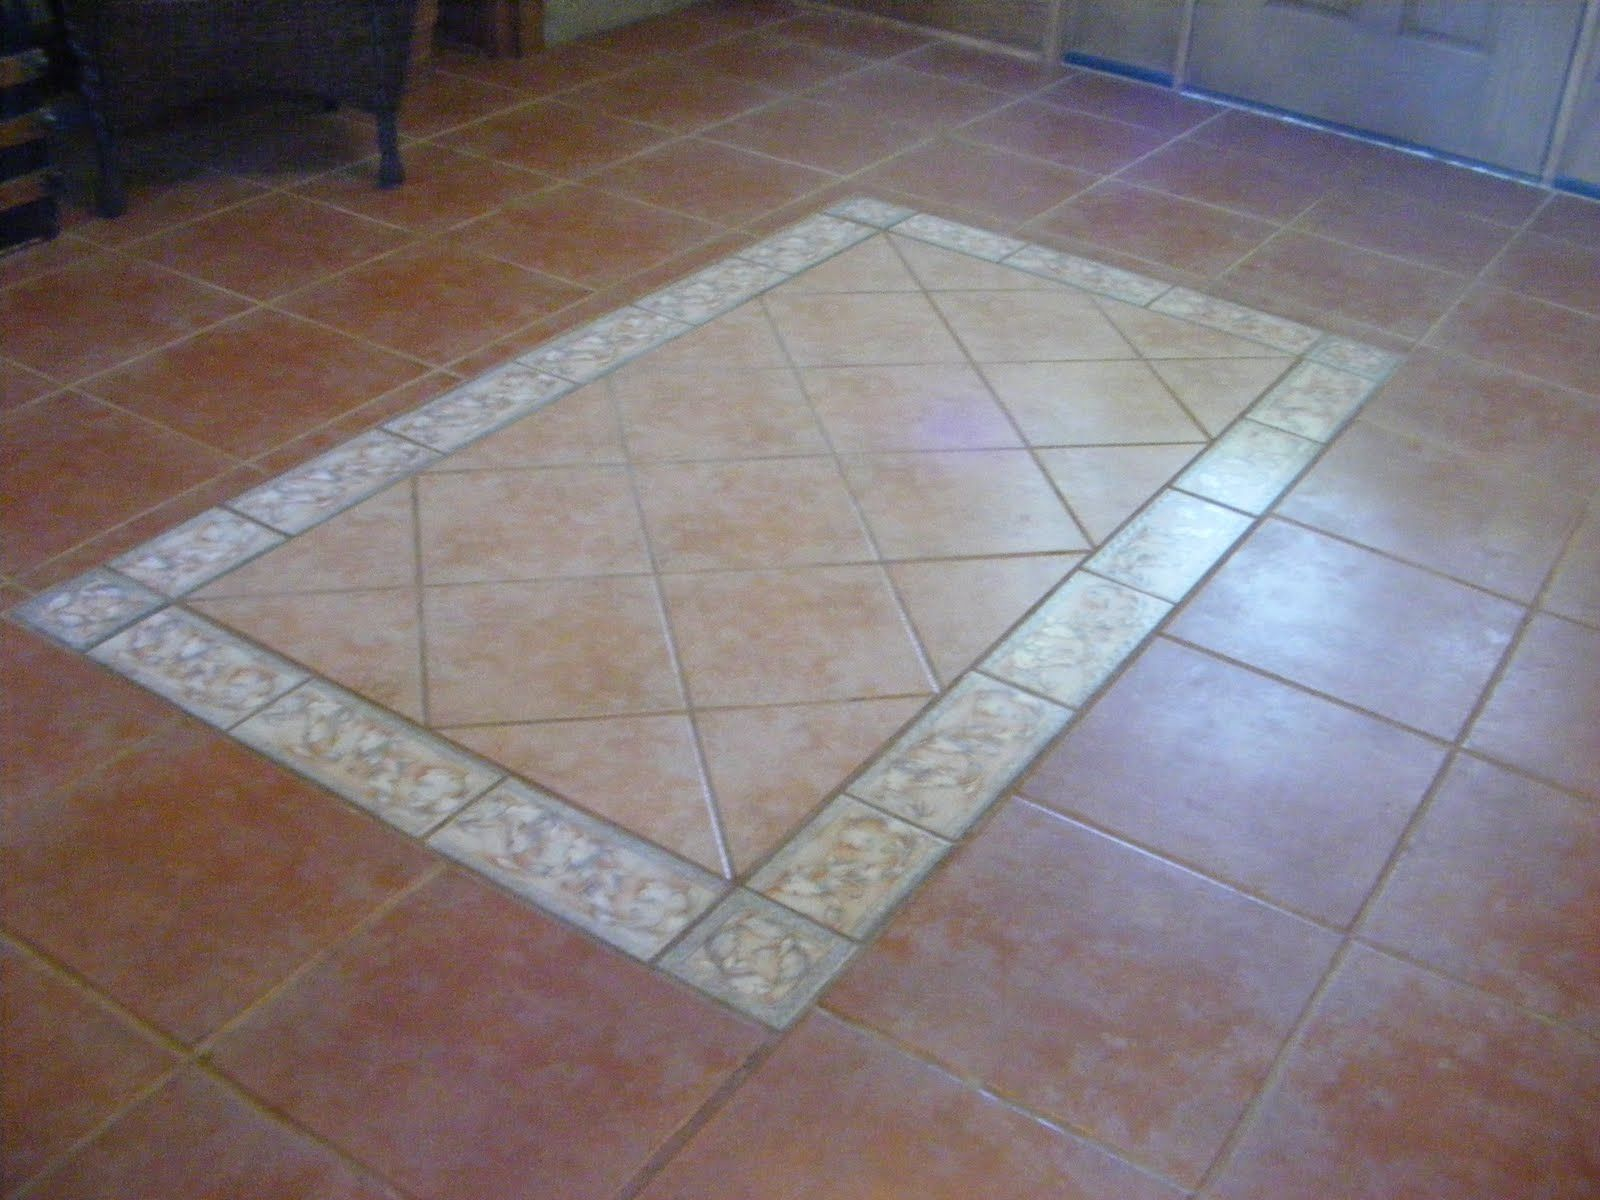 Kitchen Floor Tile Patterns Decoration Floor Tile Design Patterns Of New Inspiration For New